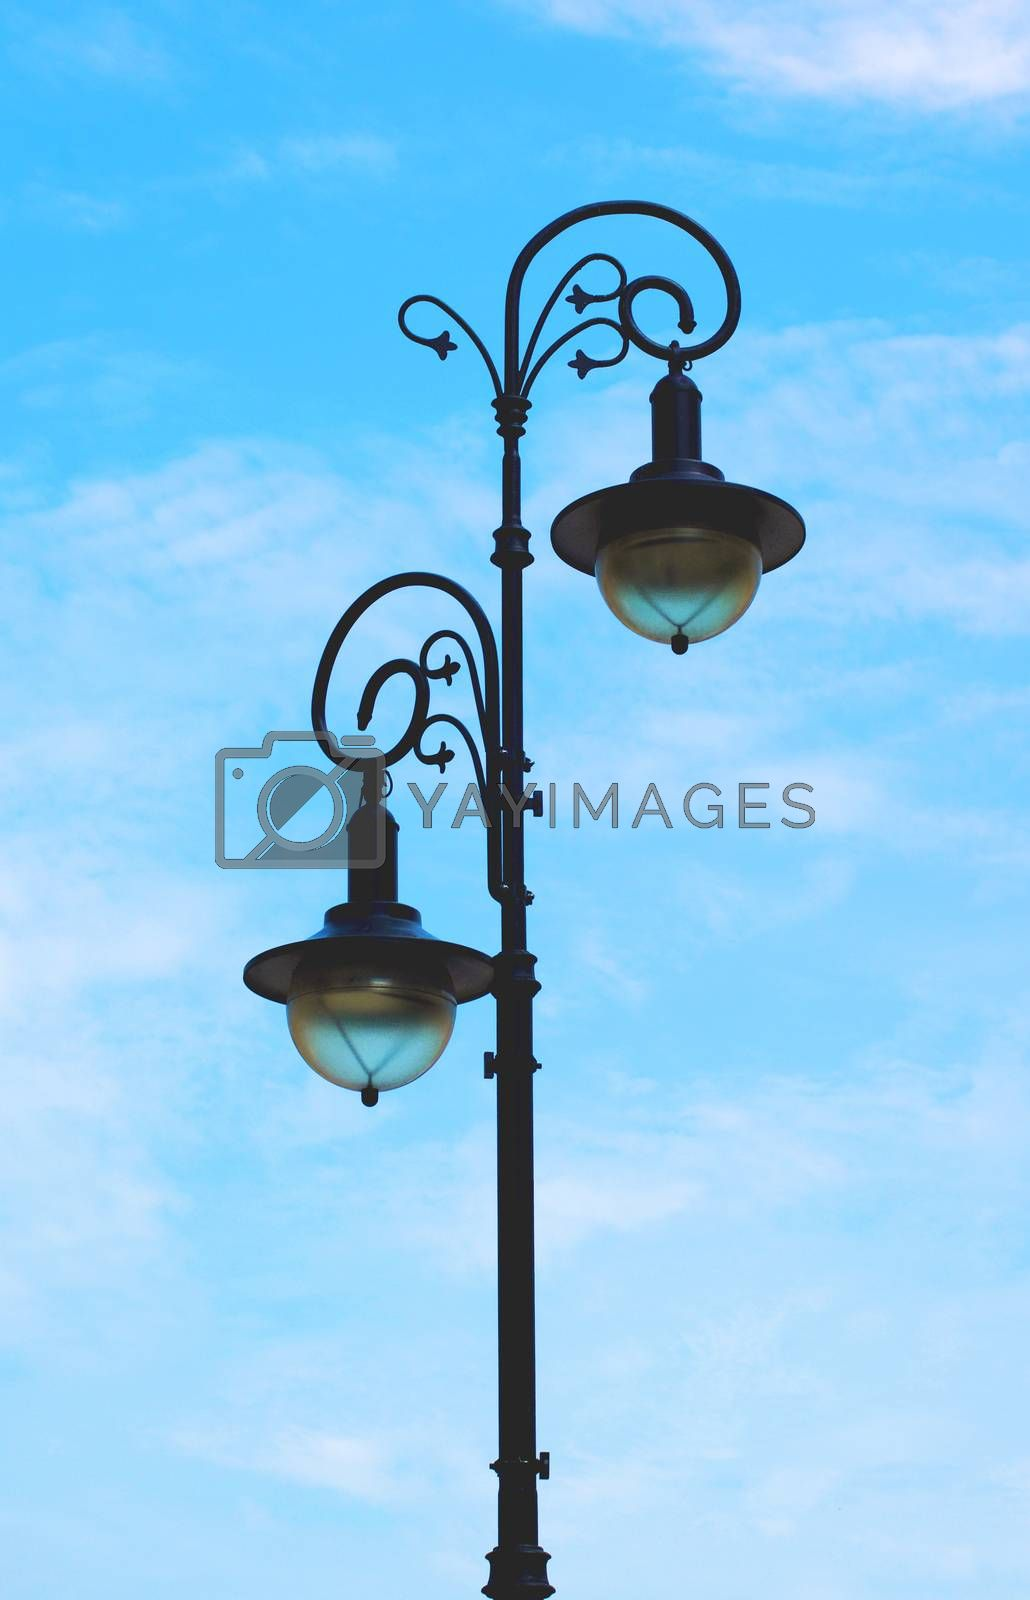 Elegant Street Lantern with with Forged Curled Details against Blue Cloudy Sky Outdoors